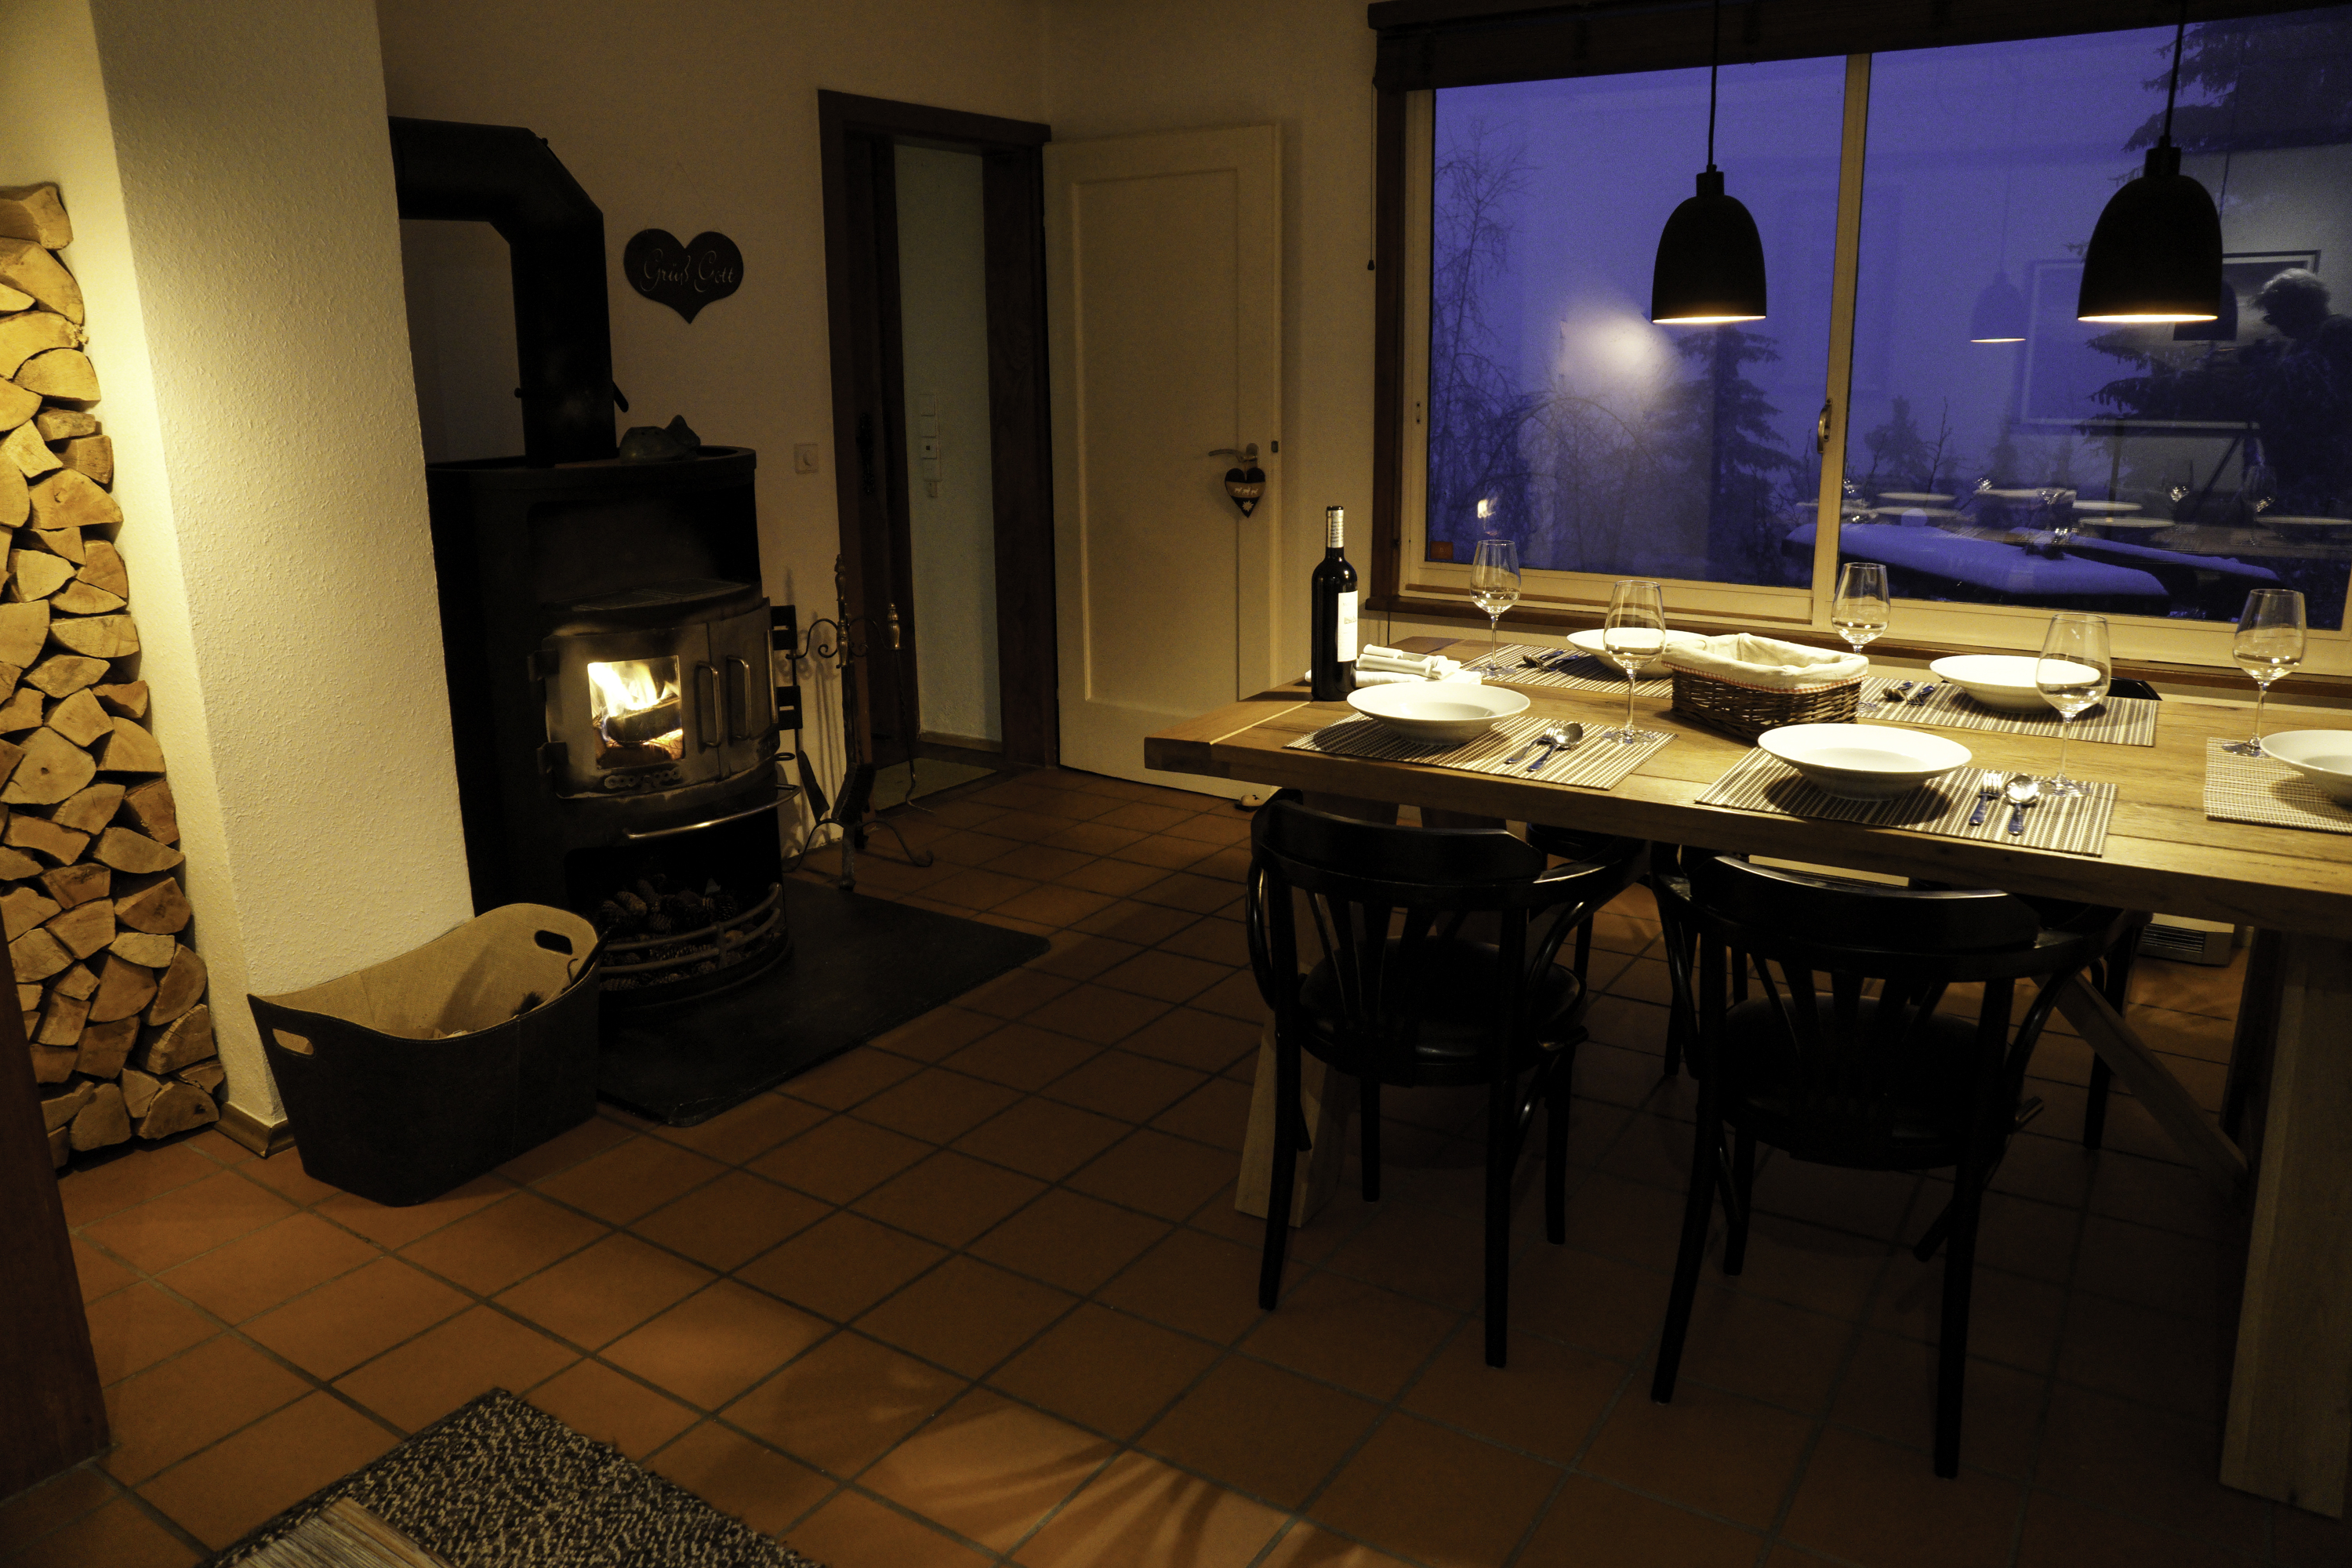 Log burner stove, panorama window